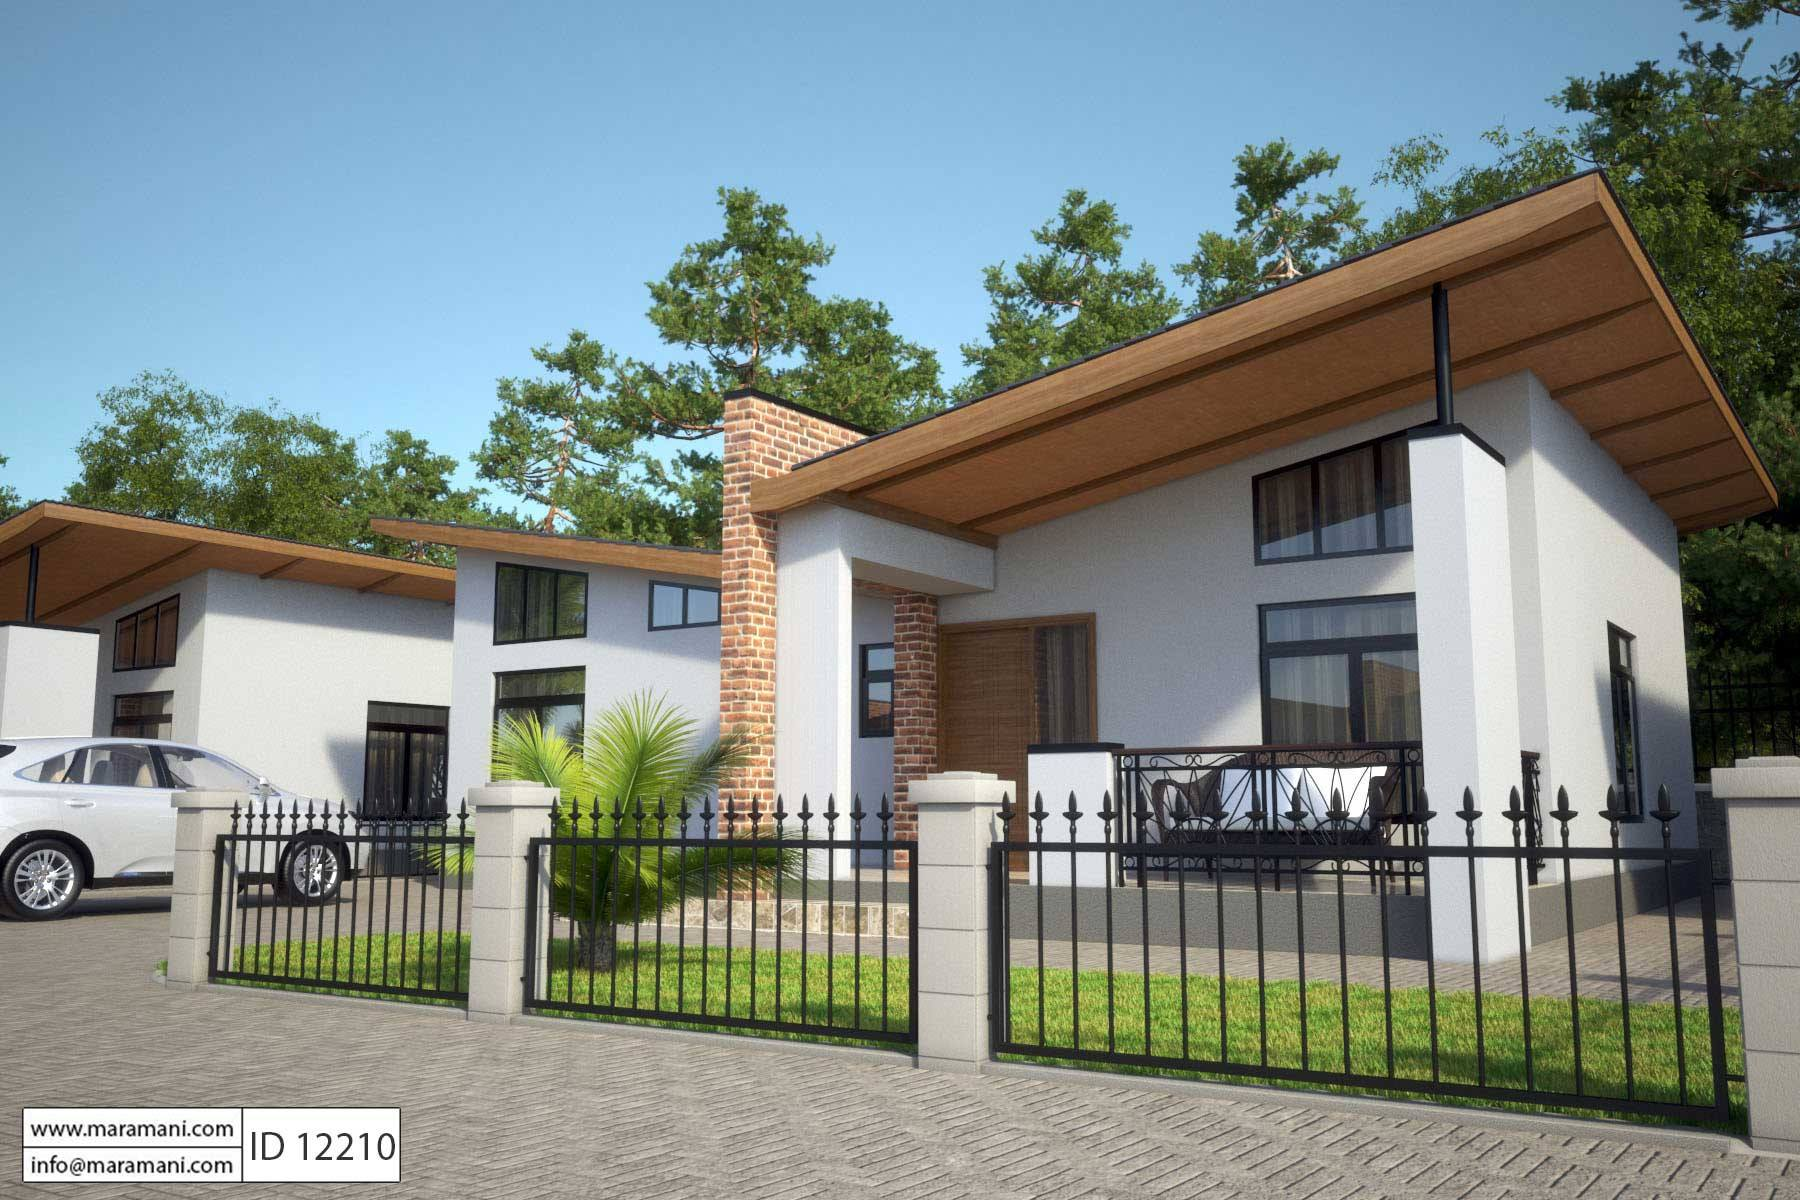 2 bedroom house plan id 12210 house designs by maramani Build 2 bedroom house